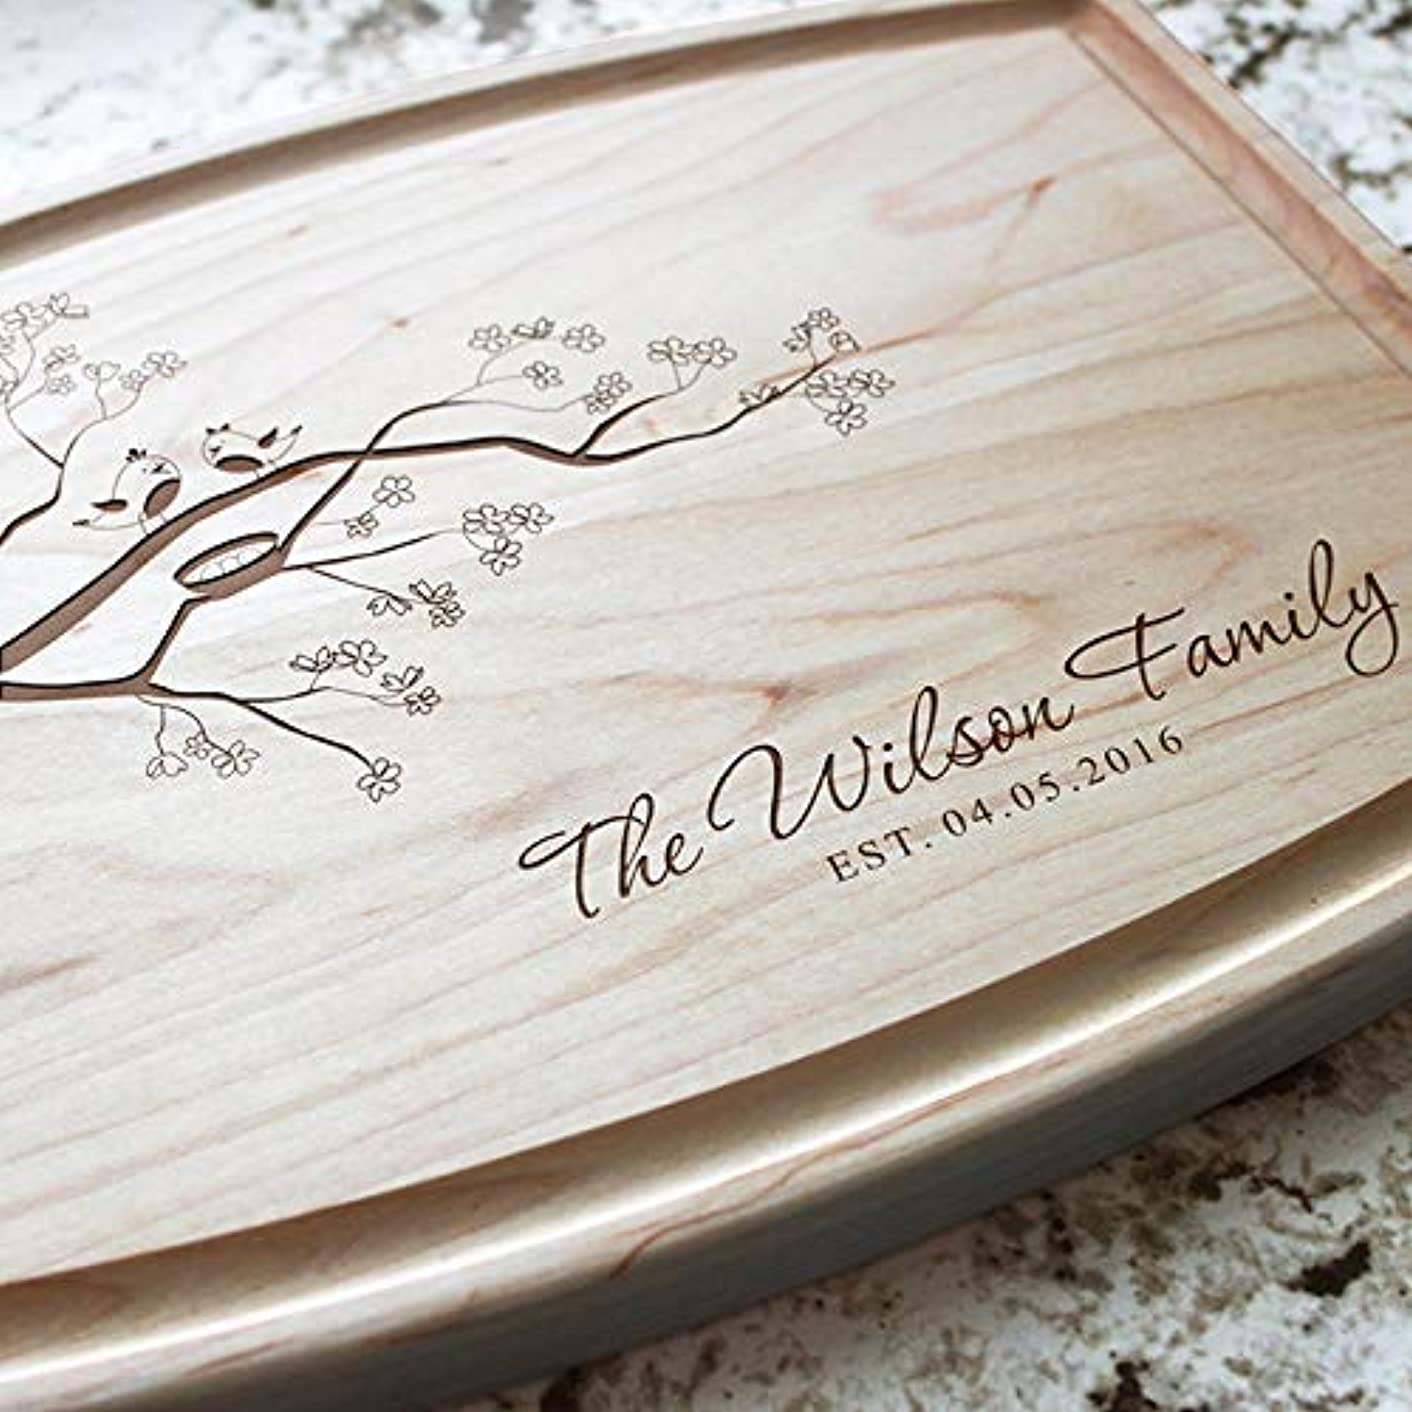 Family Tree of Life Personalized Cutting Board - Engraved Cutting Board, Custom Cutting Board, Wedding Gift, Housewarming Gift, Anniversary Gift, Engagement W-037GB